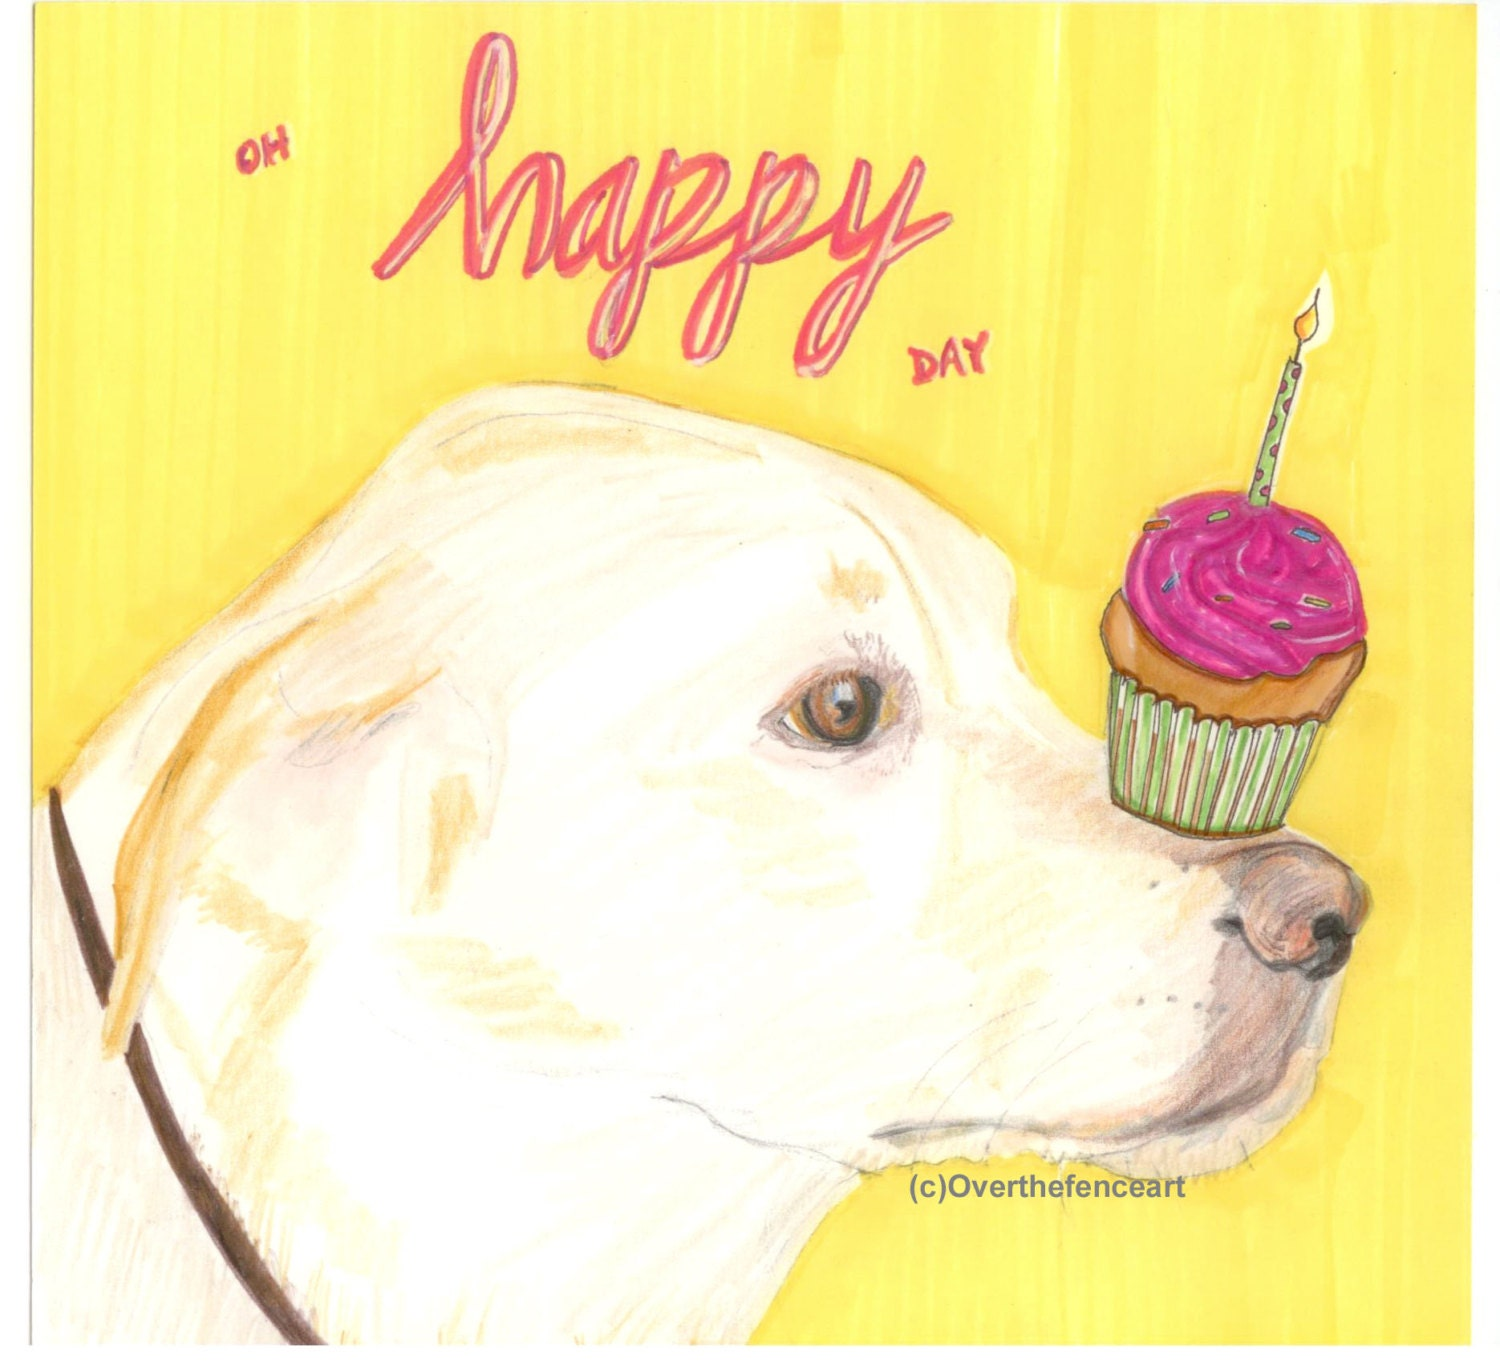 Dog birthday card labrador dog artanimal art labrador art zoom kristyandbryce Choice Image